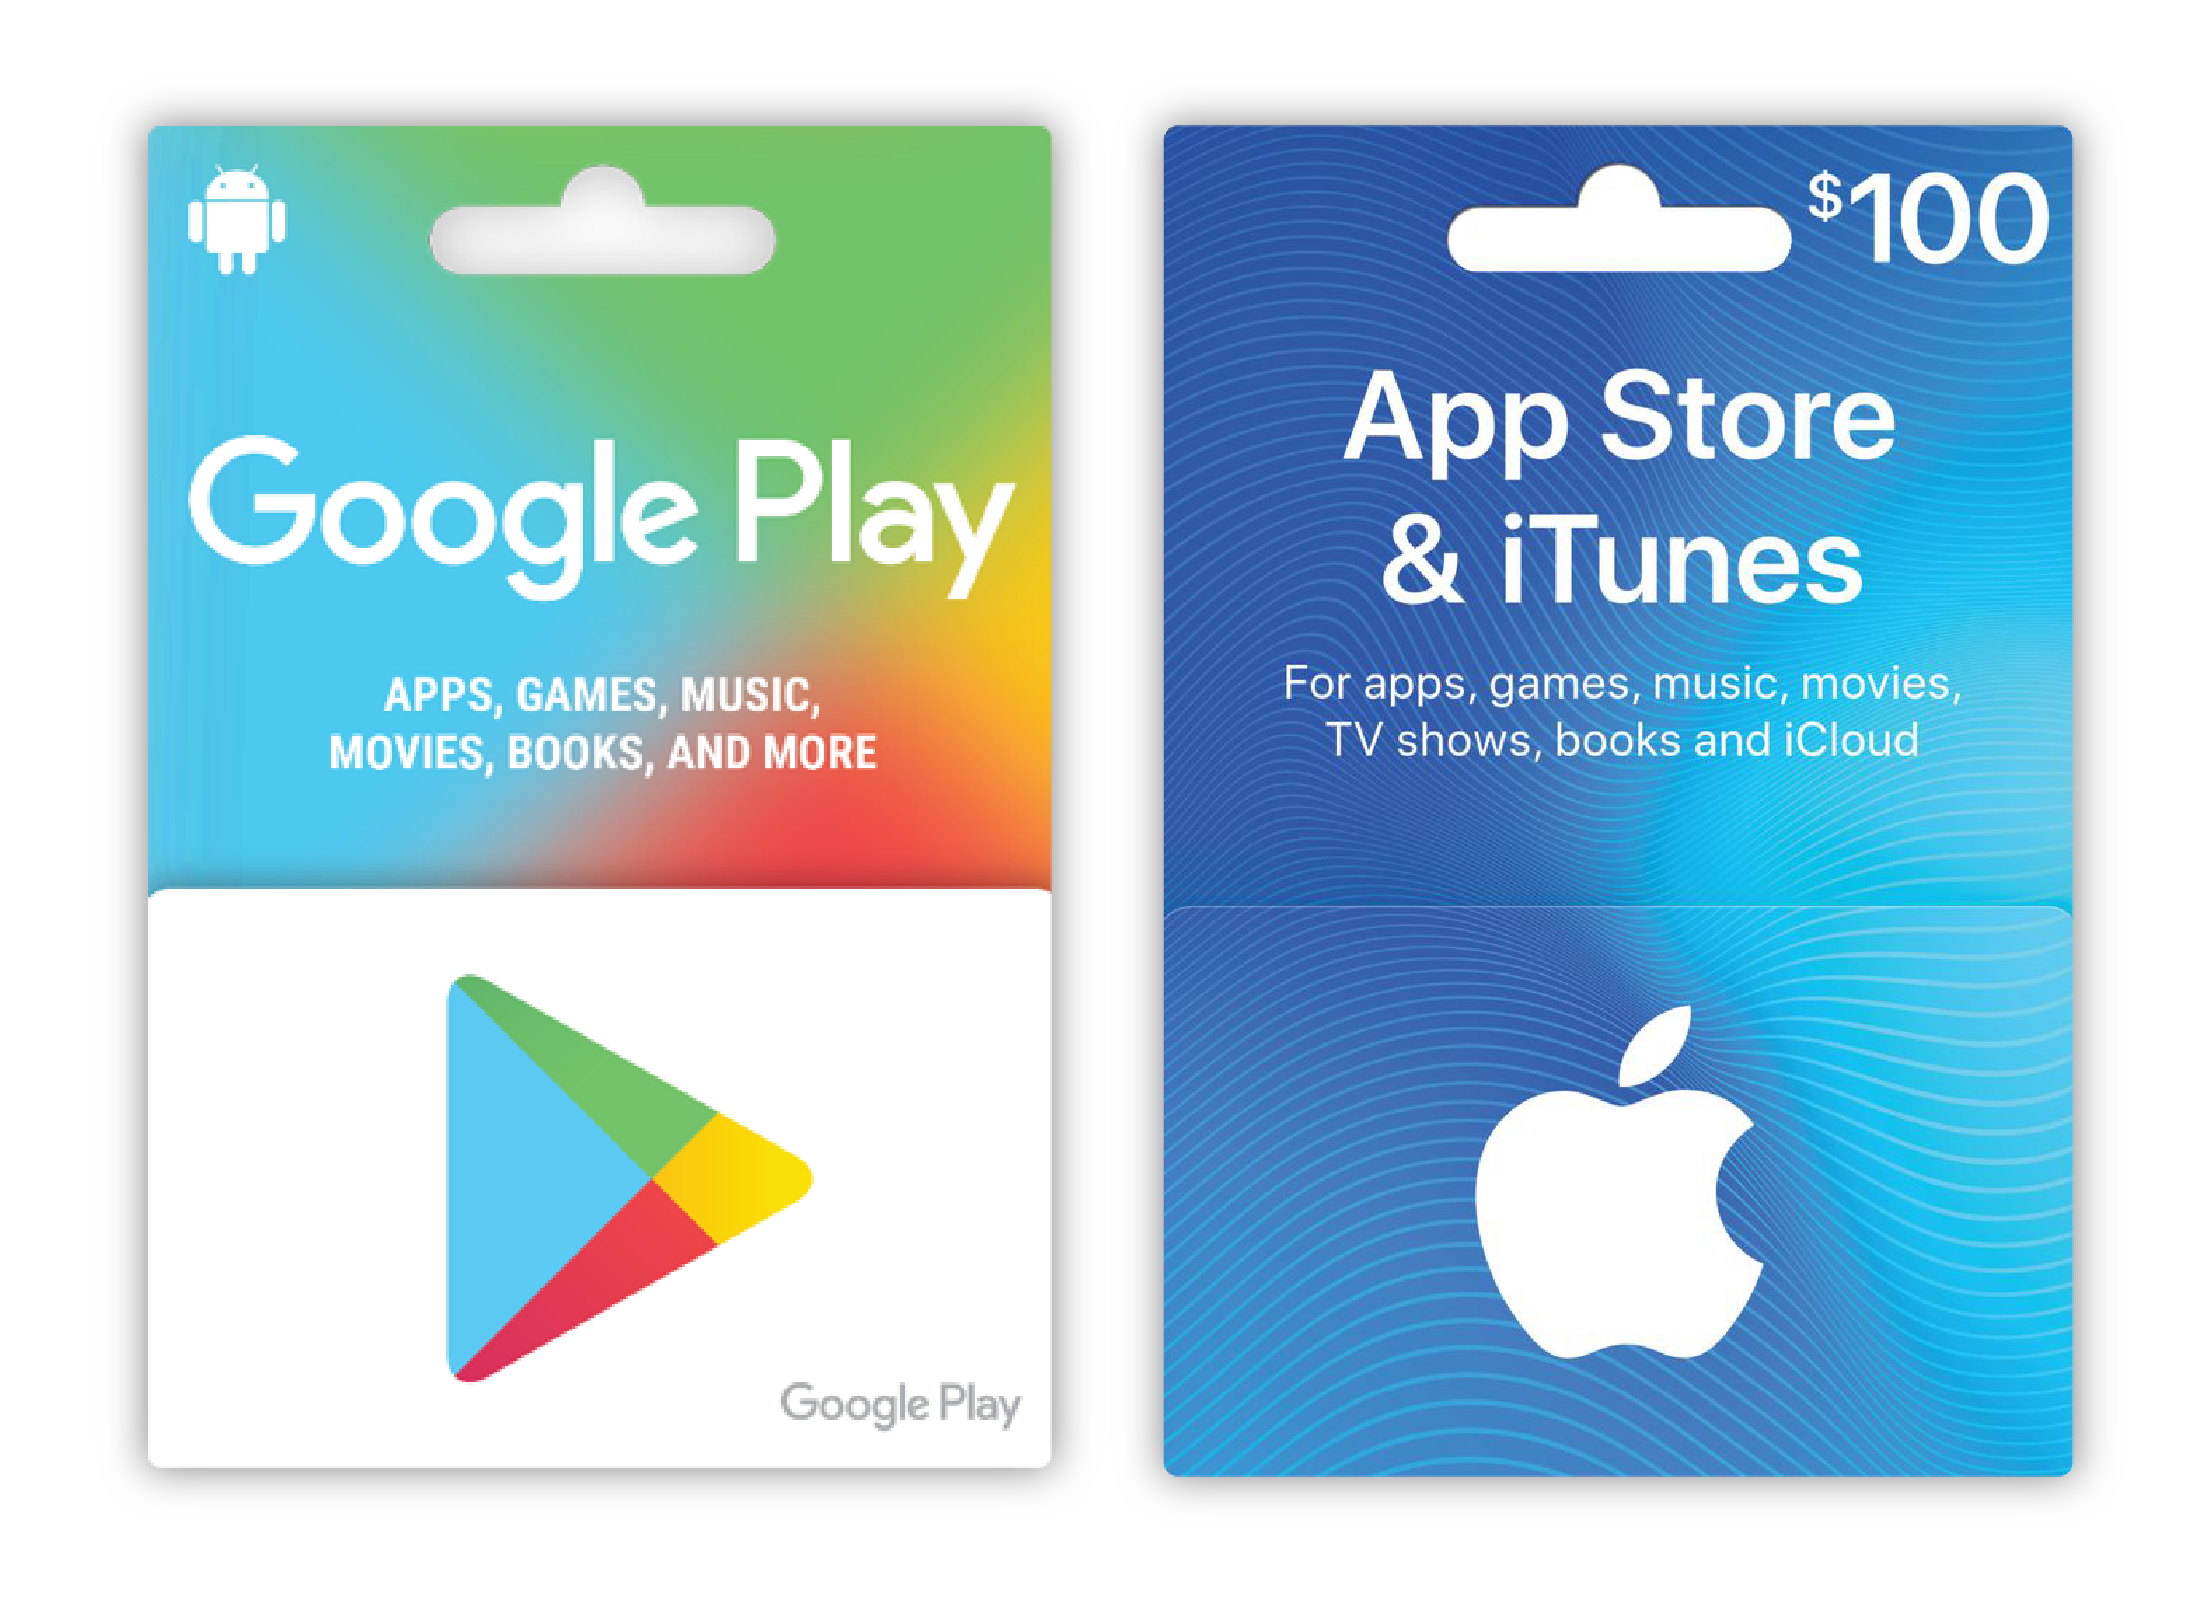 Examples of app gift cards that can be found in many convenience stores and supermarkets - sometimes even on discount